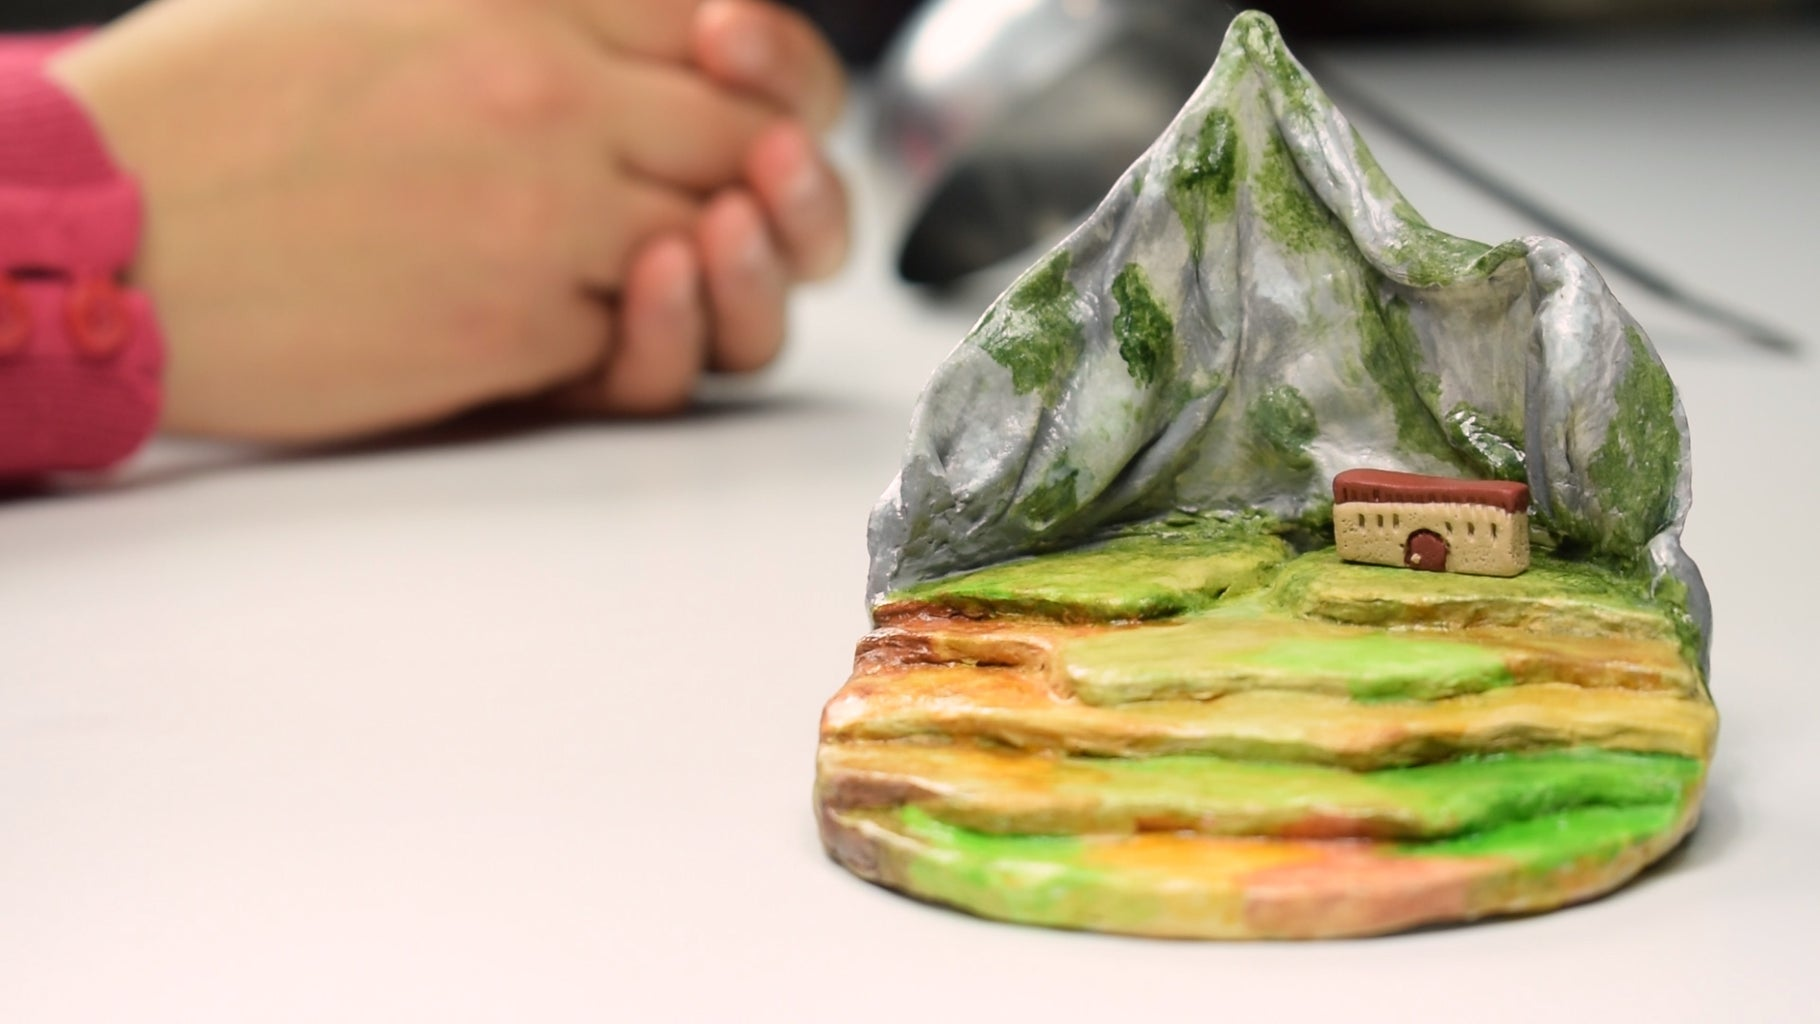 Creation of Buildings, Trees and Agricultural Land With Polymer Clay